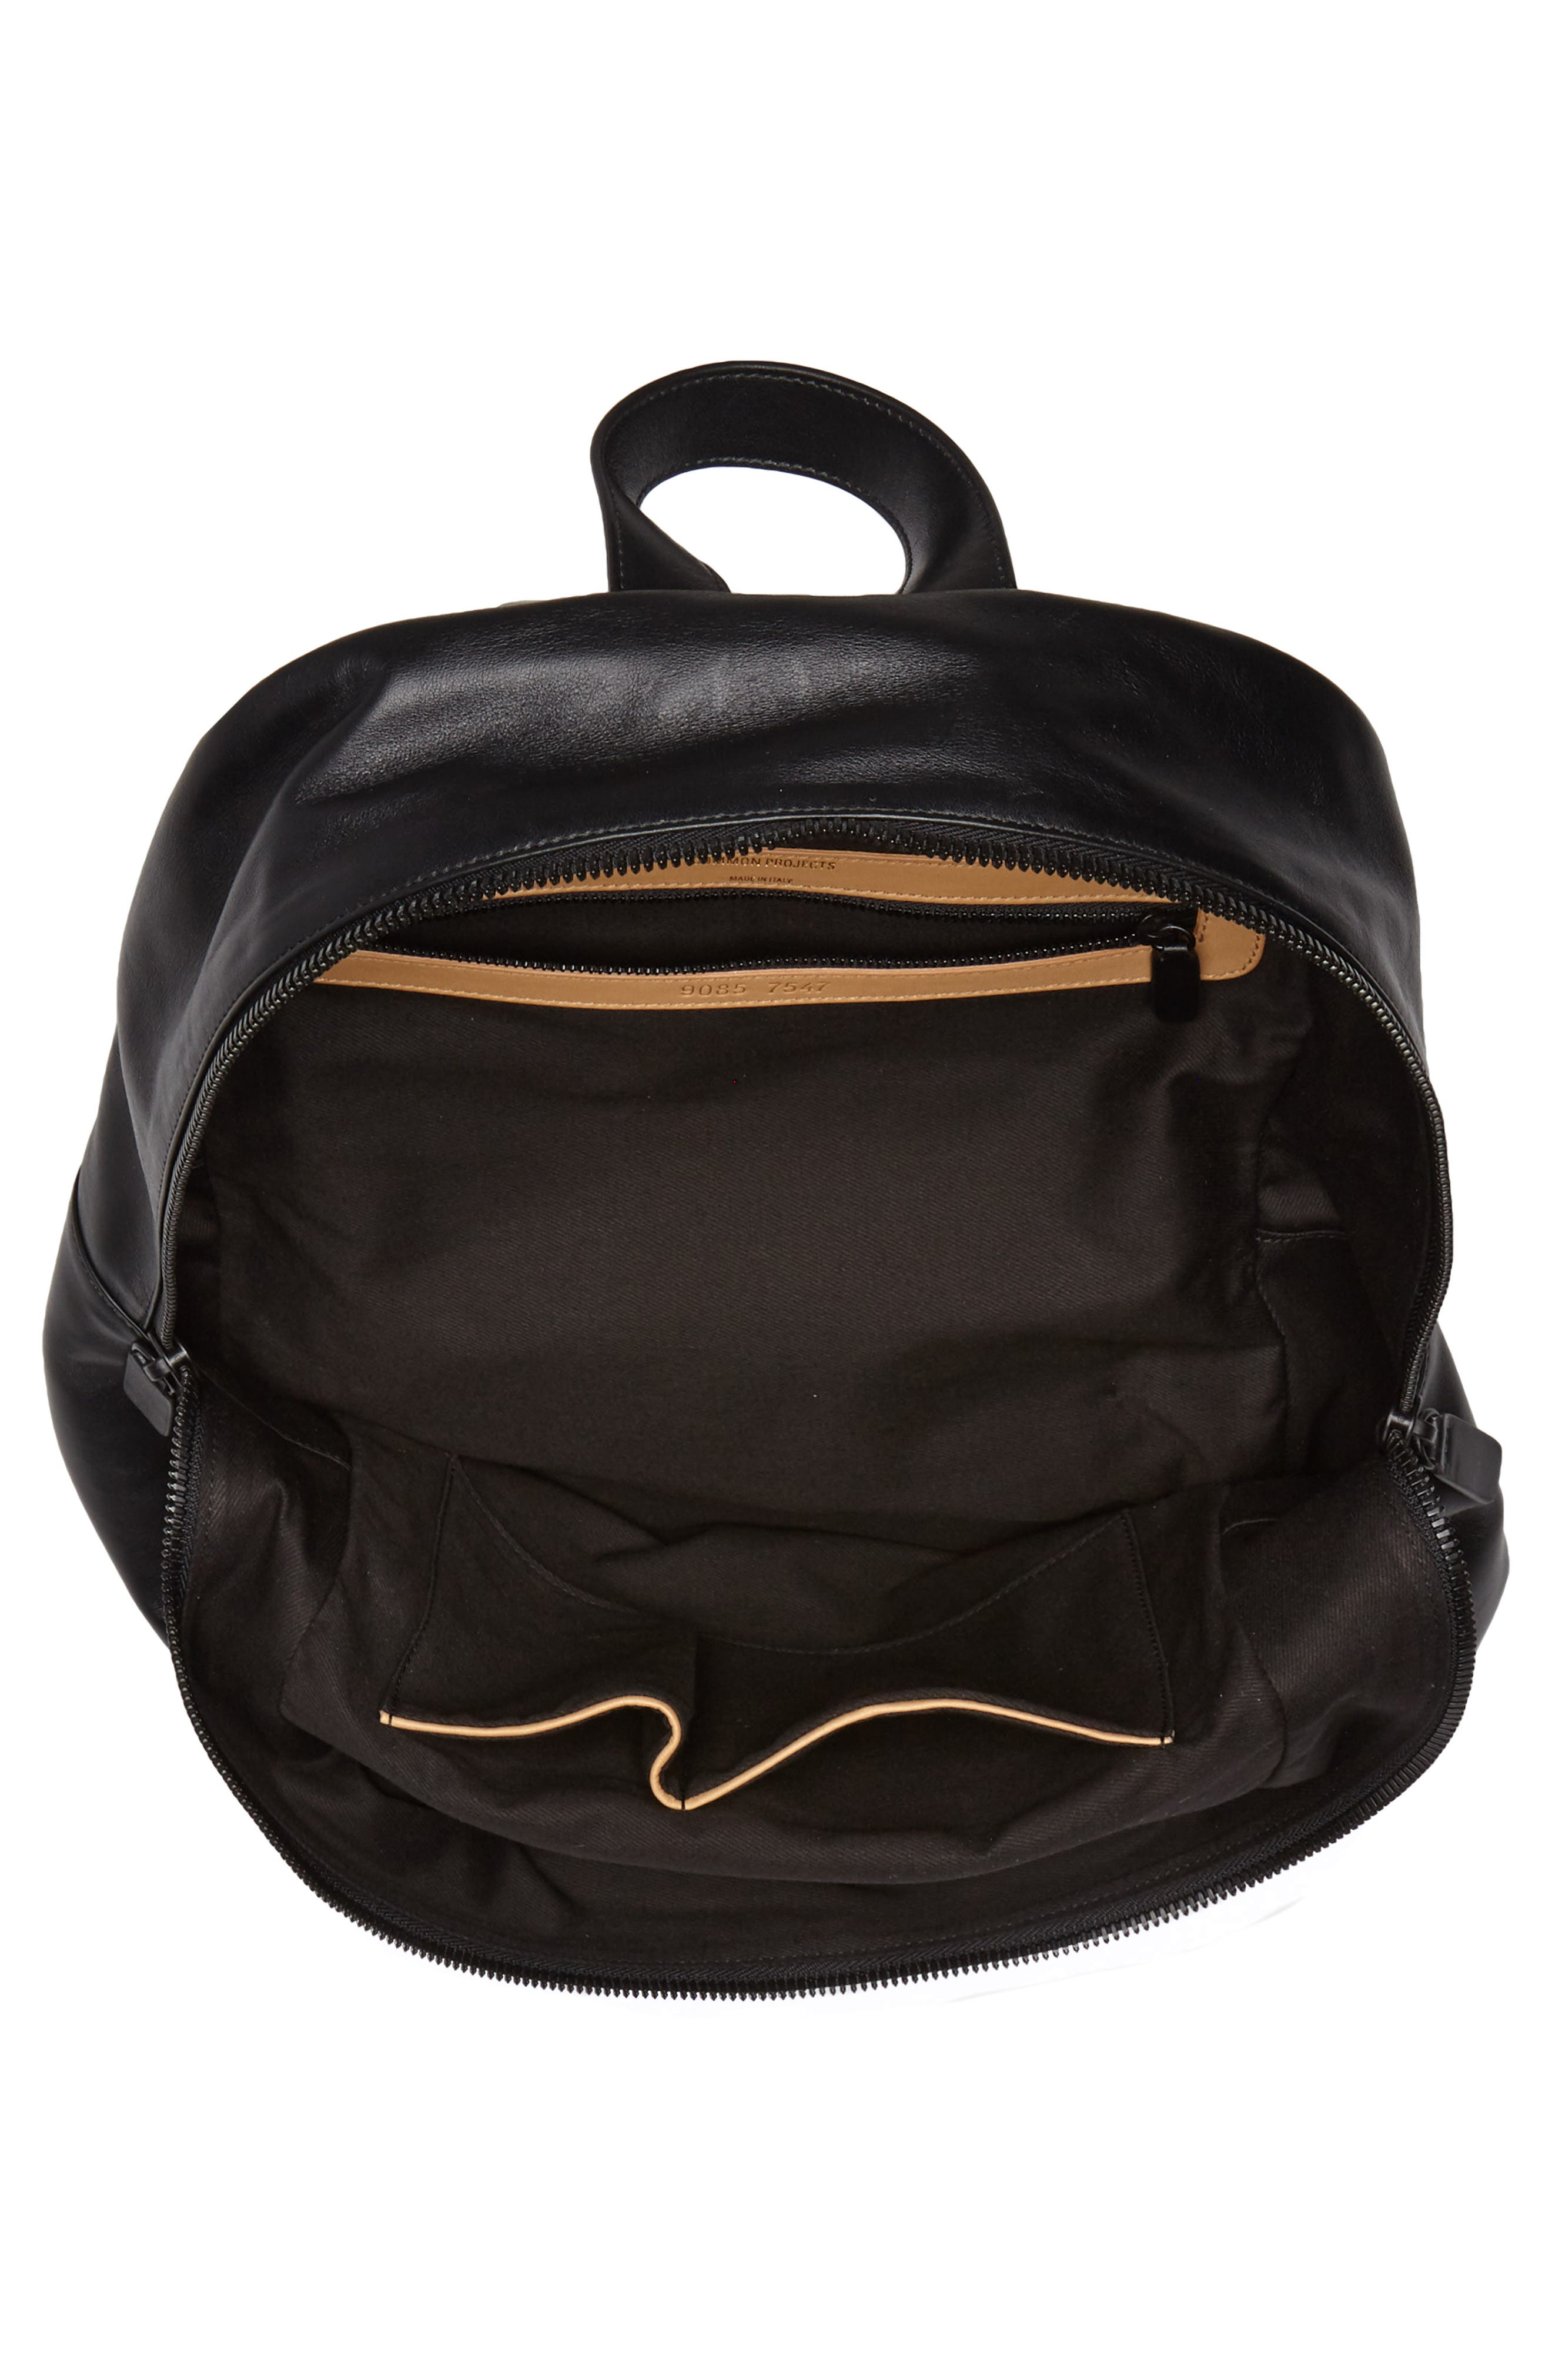 Soft Leather Backpack,                             Alternate thumbnail 4, color,                             BLACK